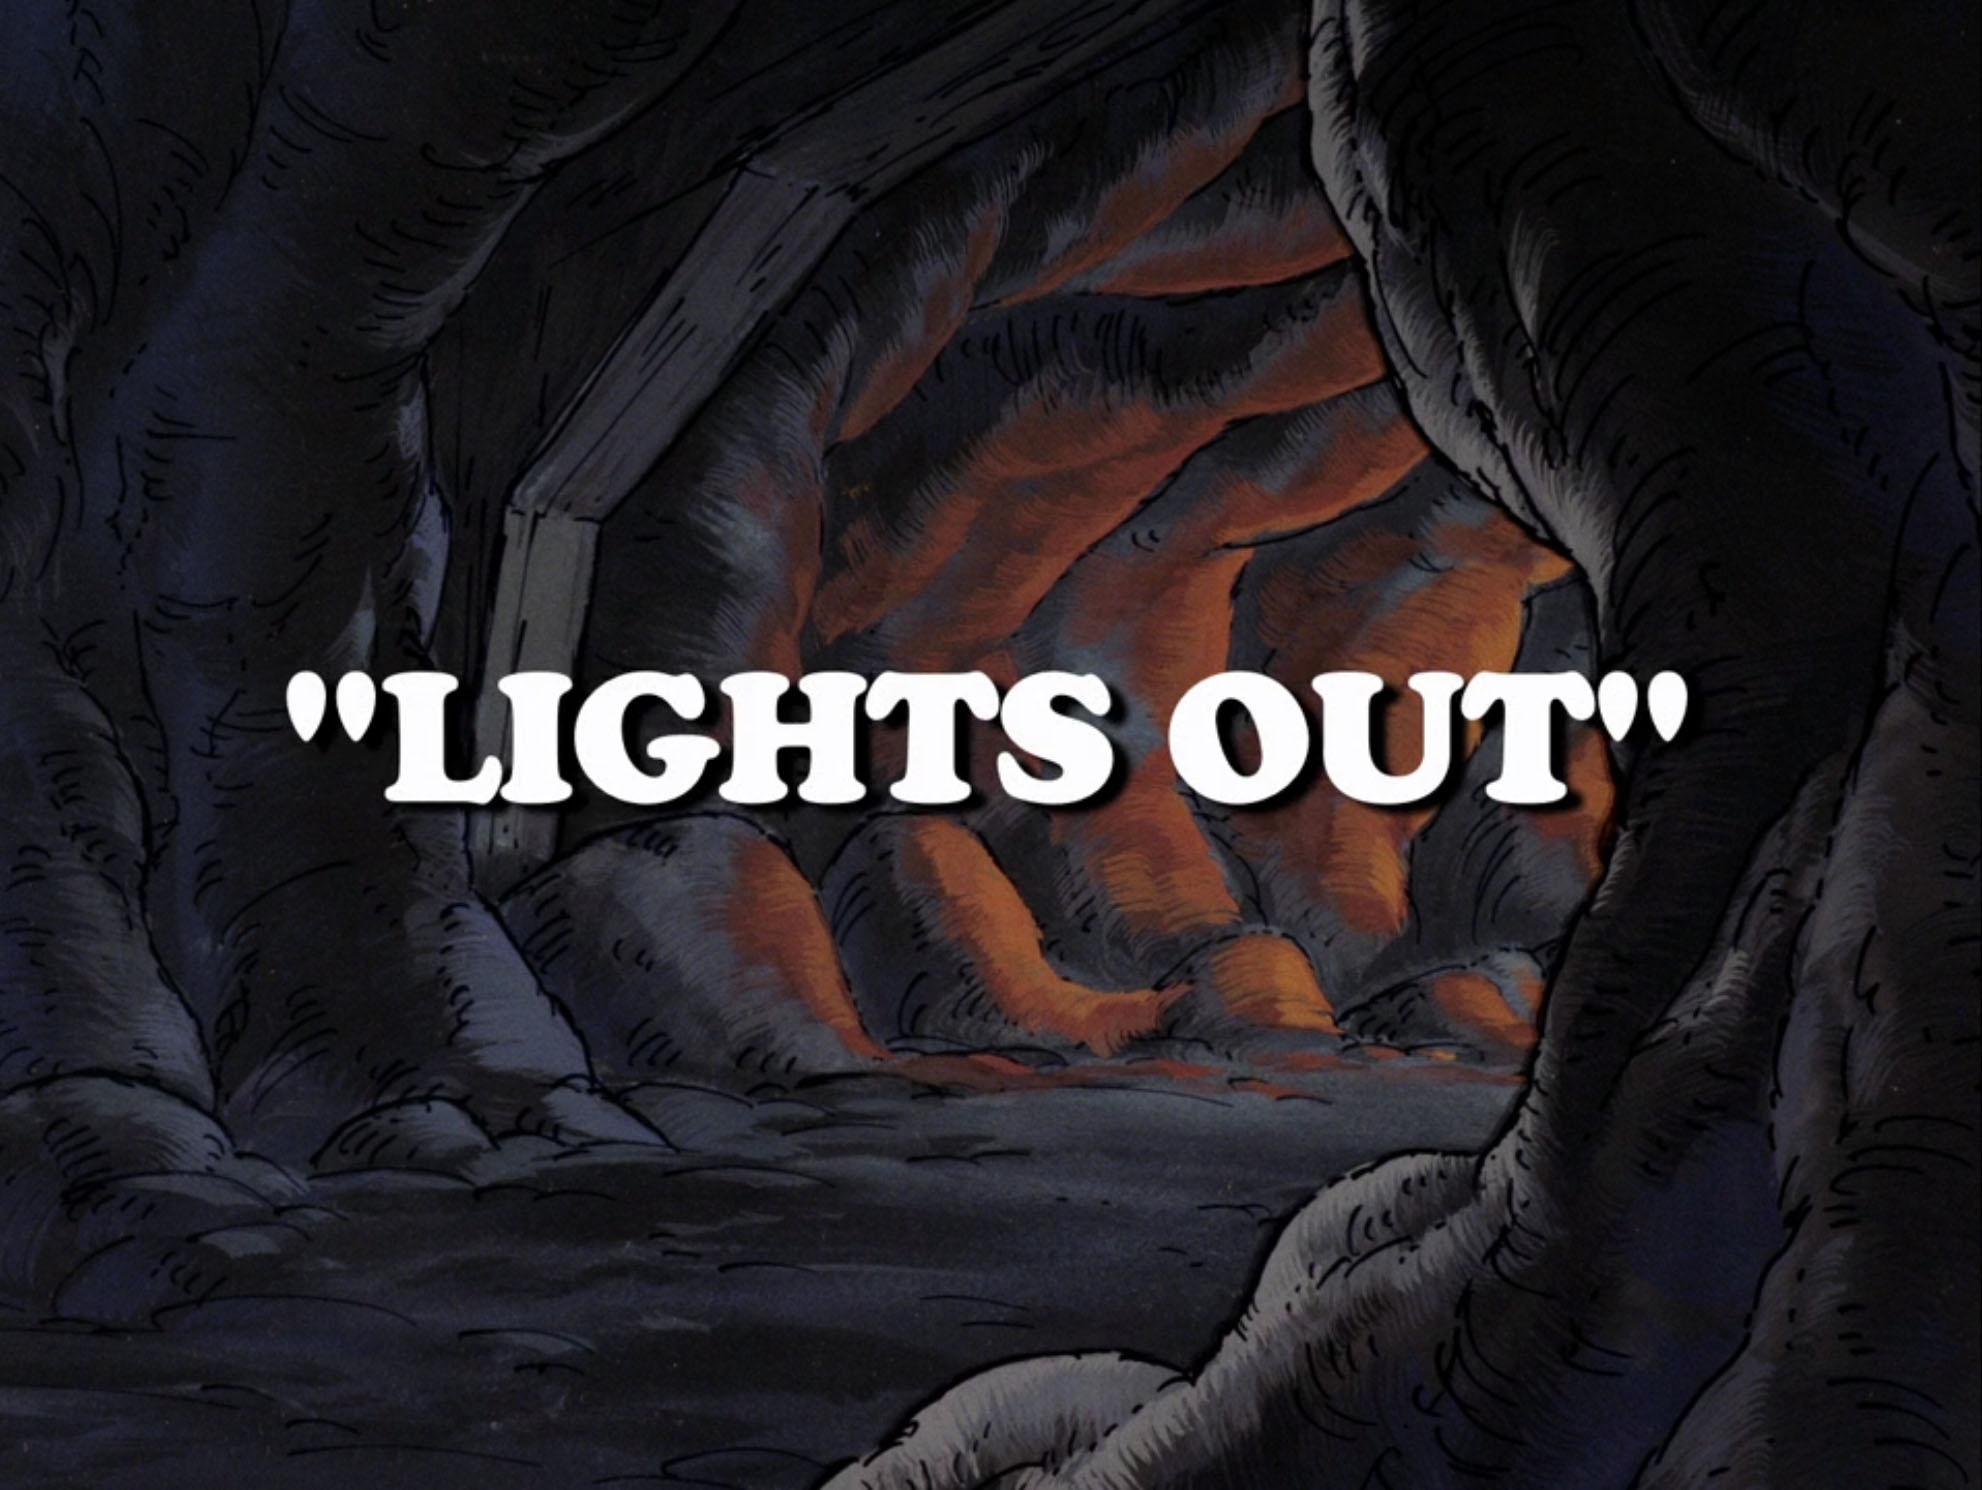 File:Lights Out.jpg